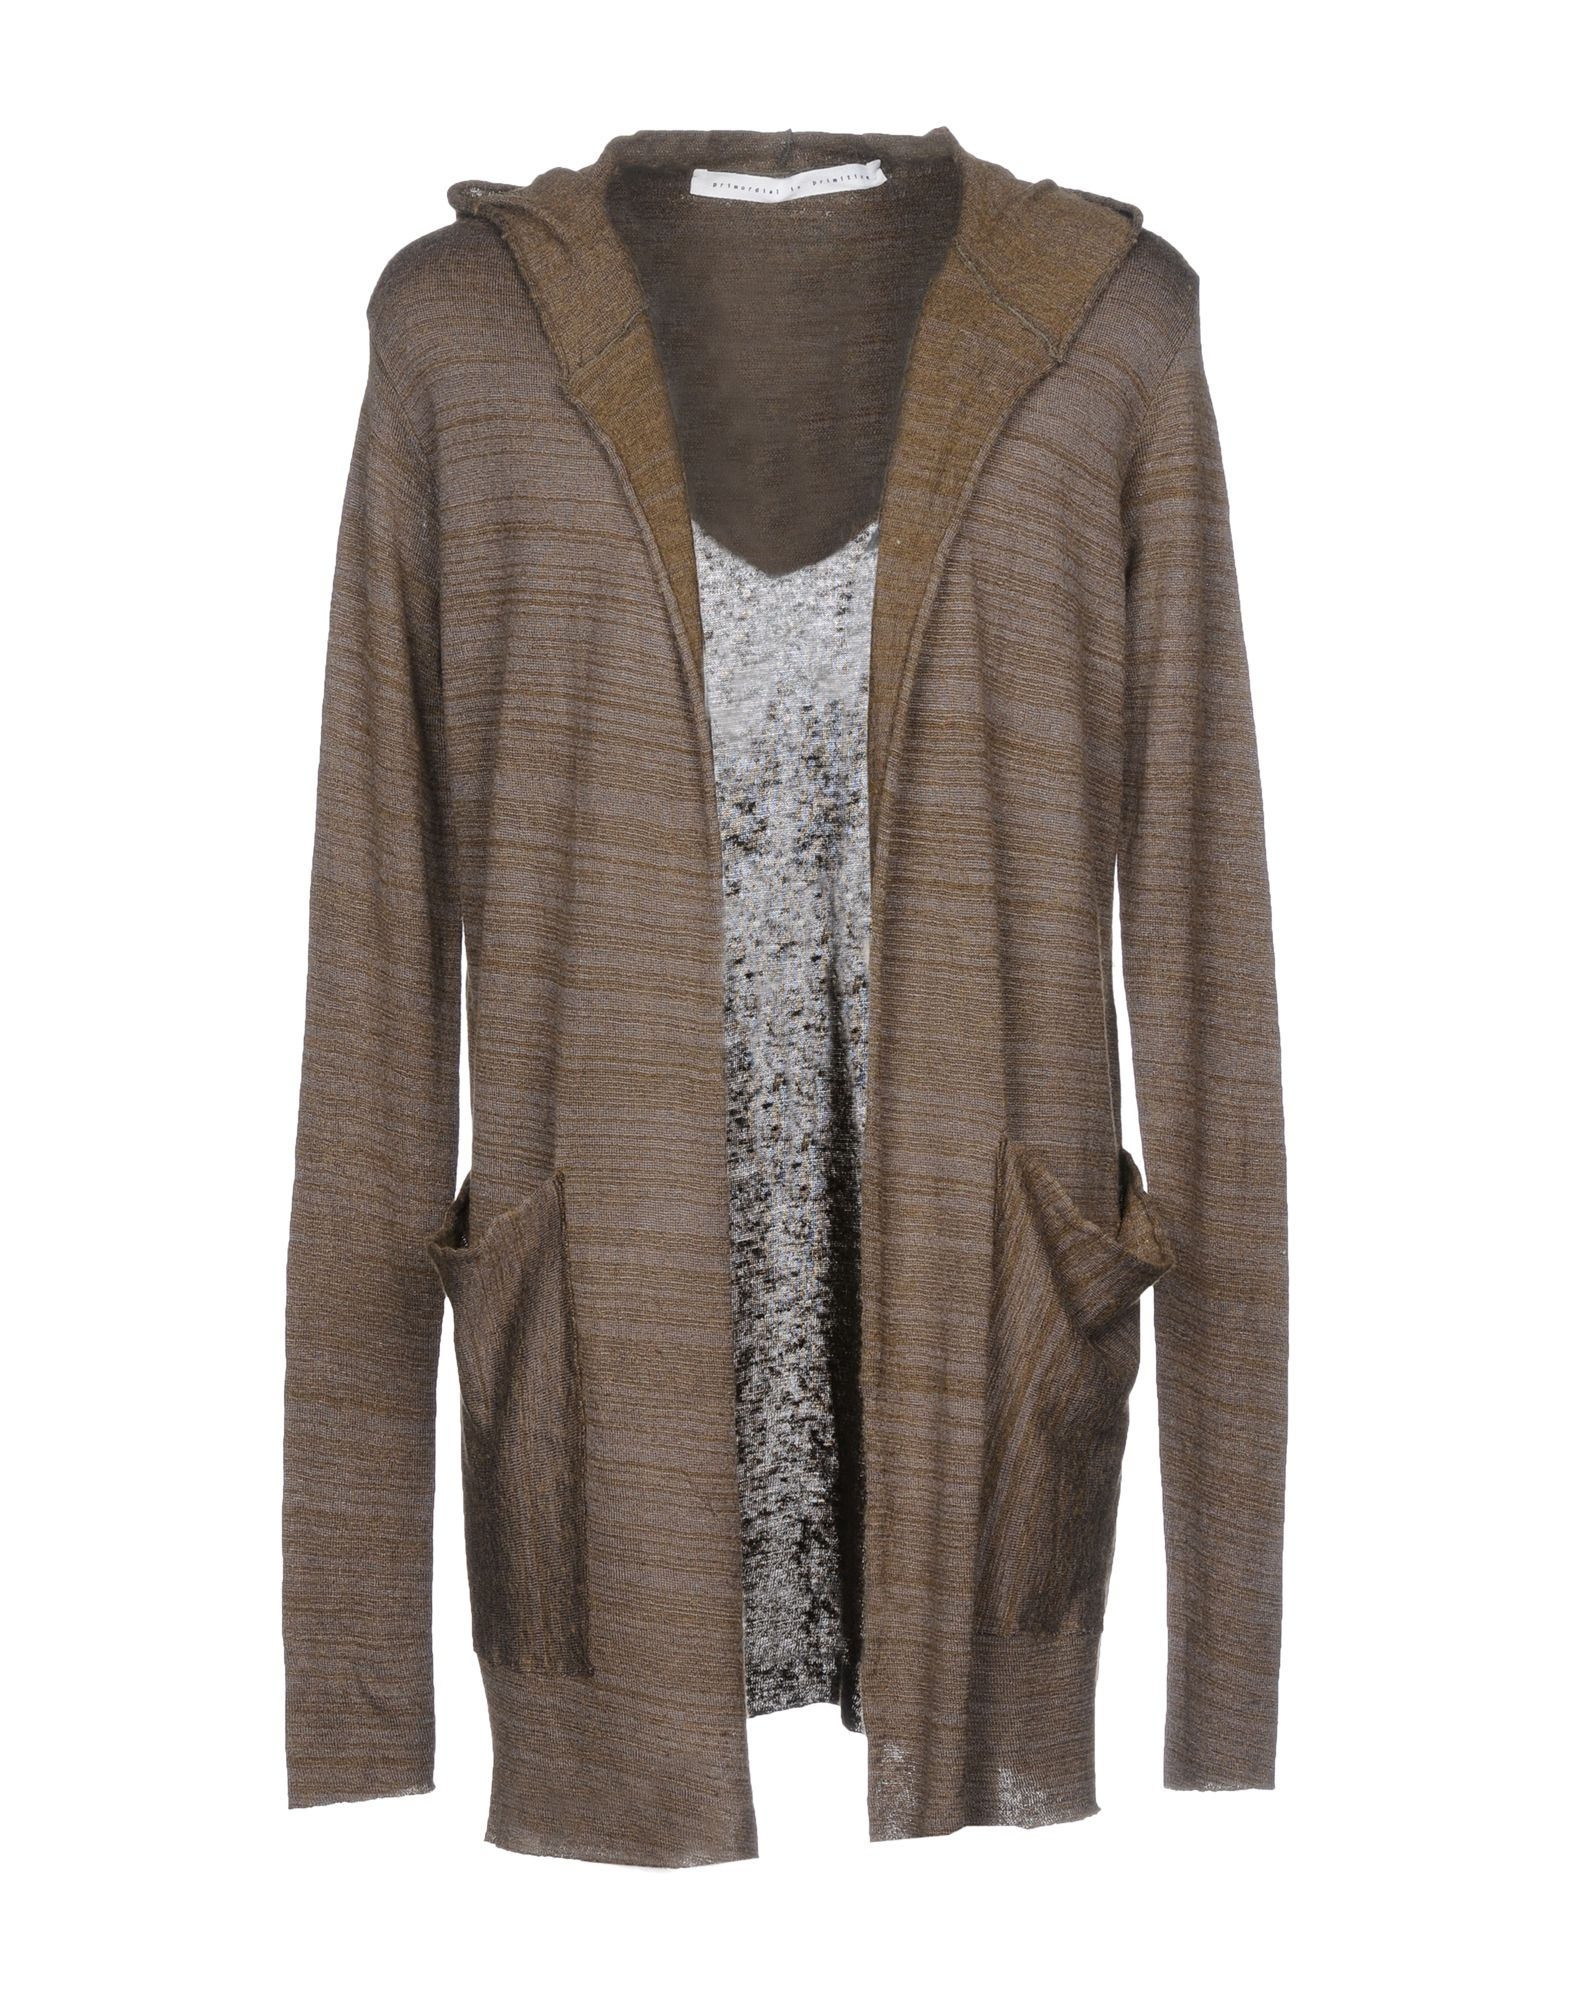 PRIMORDIAL IS PRIMITIVE Cardigan in Military Green